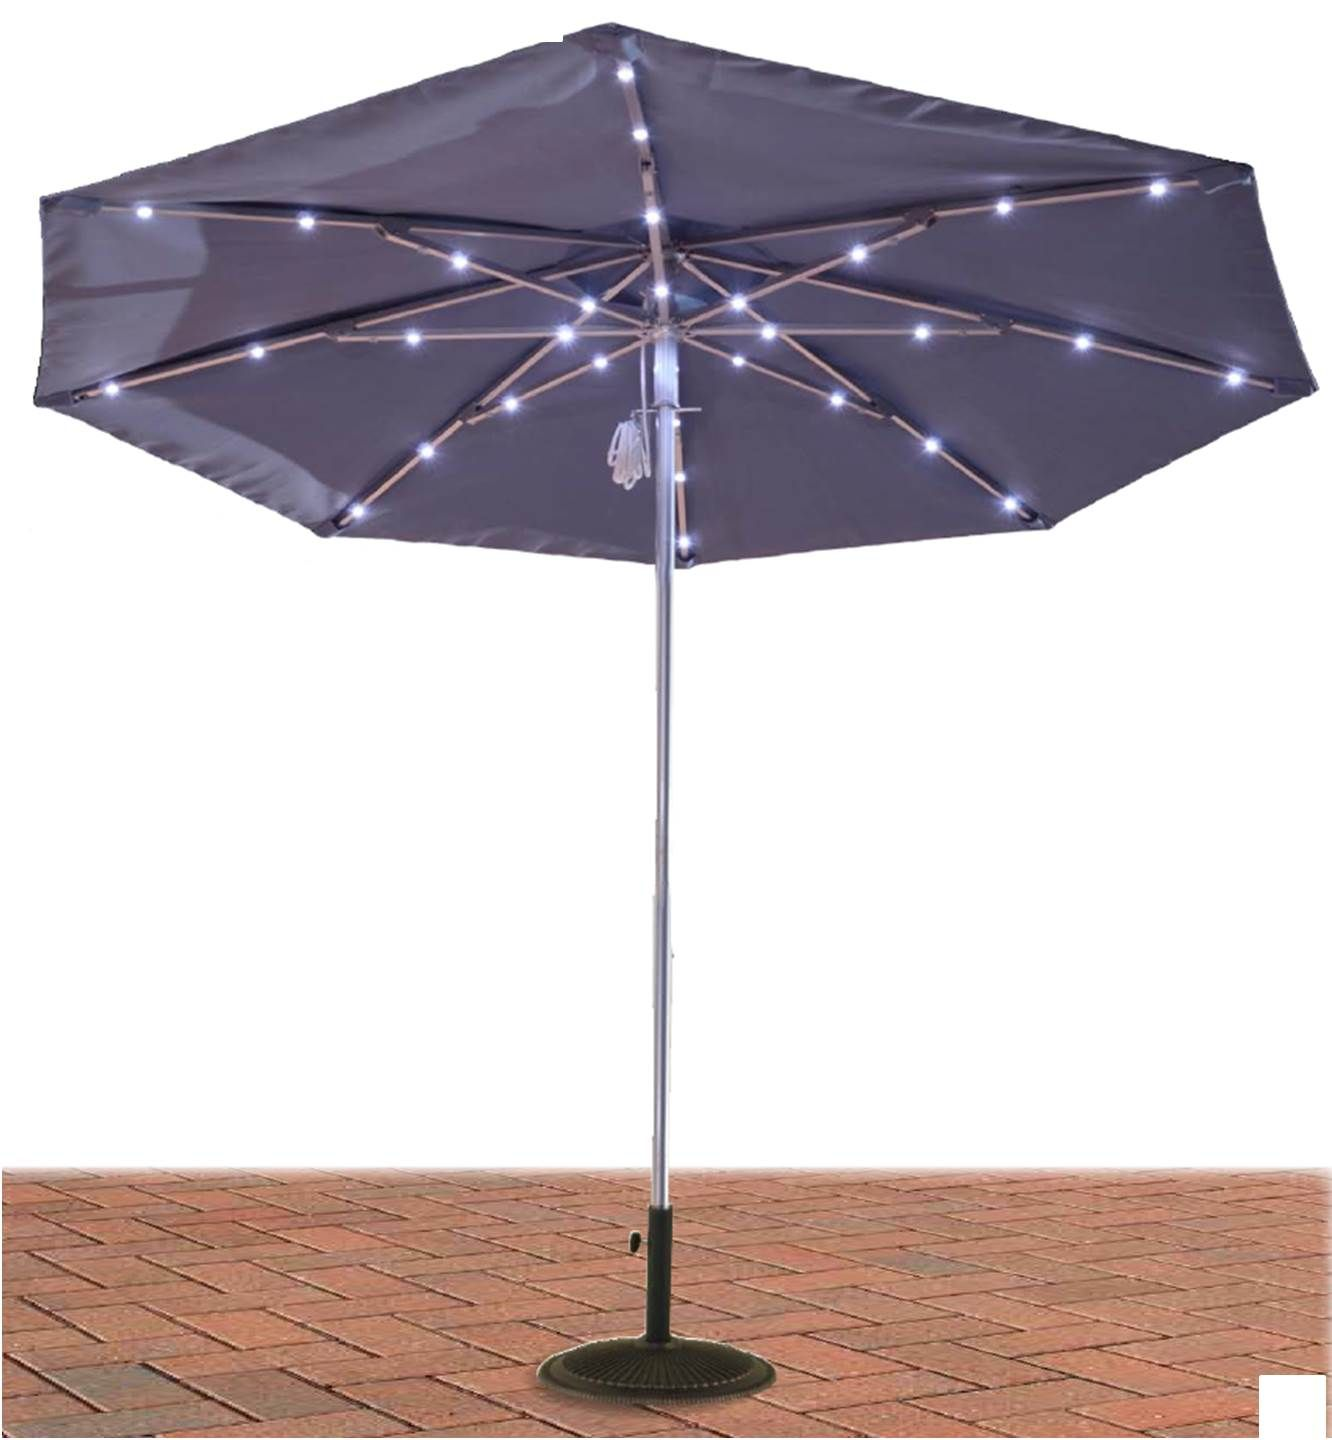 How To Use Umbrella Lights Brilliant Sunbrella Solar Patio Umbrella With Led Lights  Patio Umbrellas Decorating Inspiration